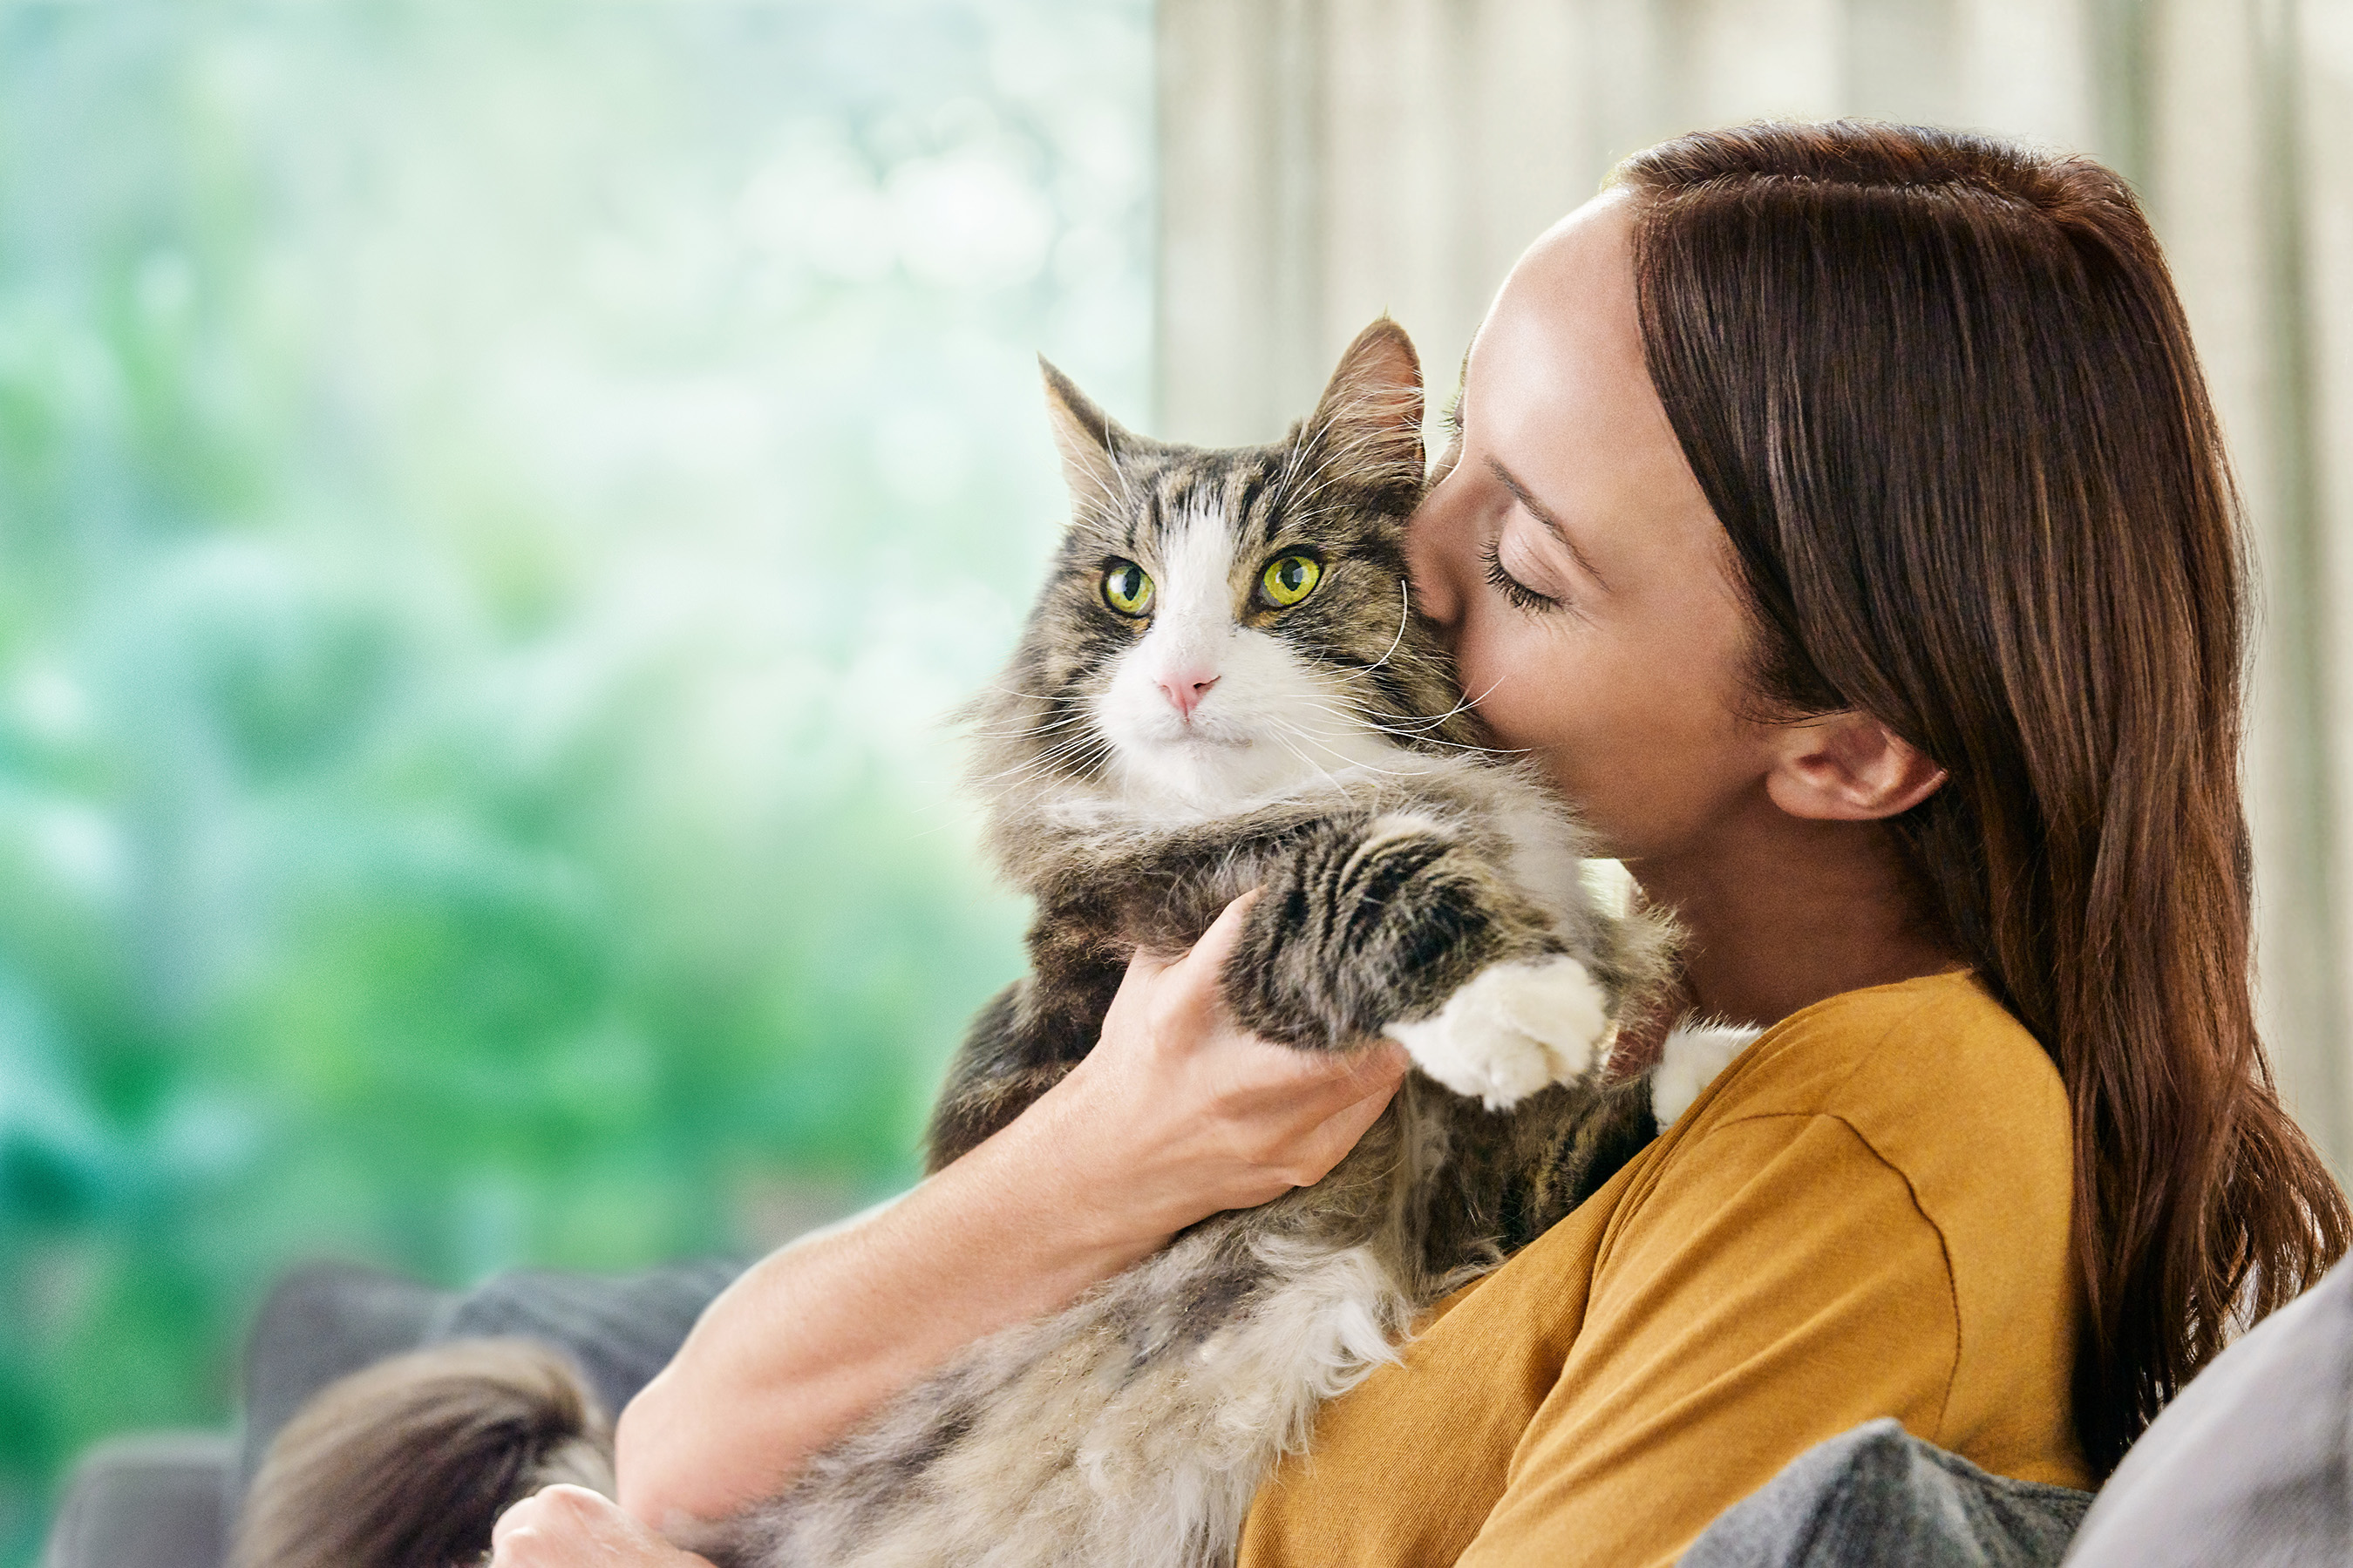 Backed by more than a decade of research, Pro Plan LiveClear is shown to safely and effectively reduce allergens in cat hair and dander in as little as three weeks of daily feeding.